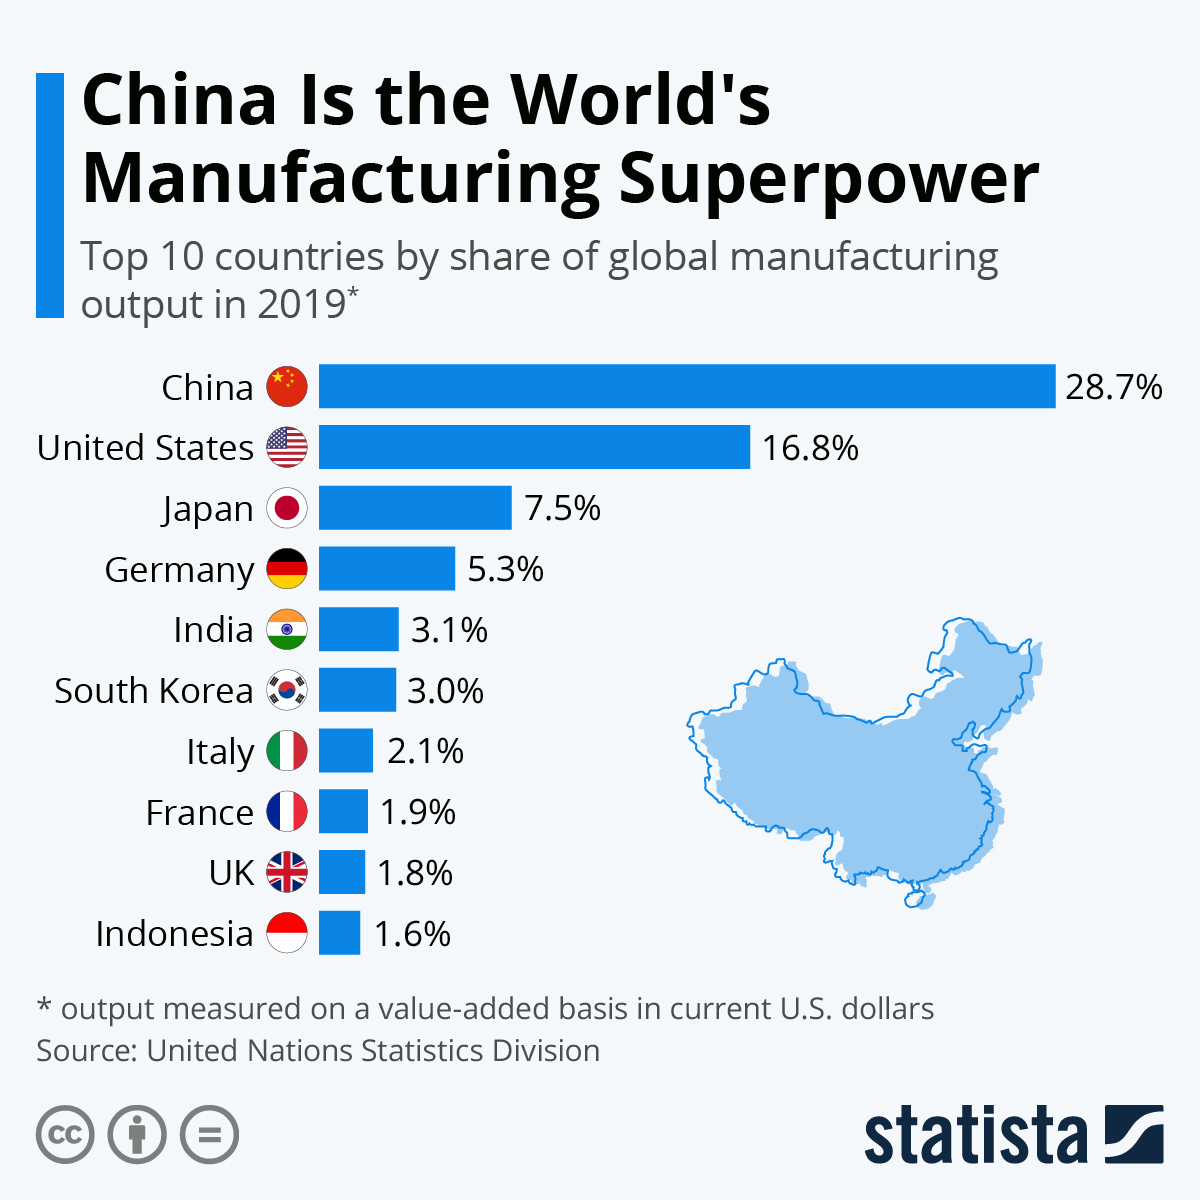 Top manufacturing powers by country